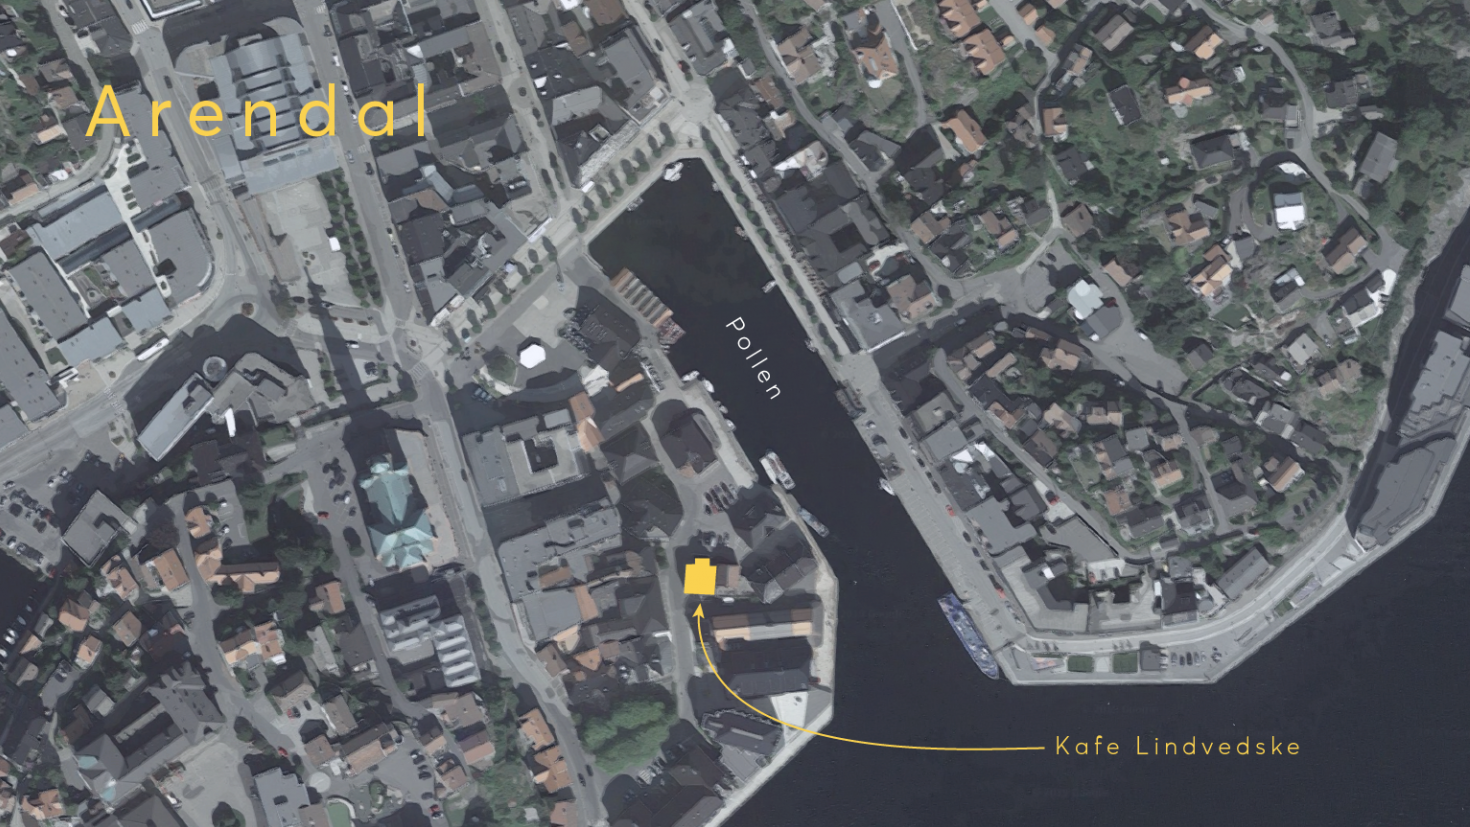 VI holder til på kafe lindvedske under arendalsuka (kart: google maps)